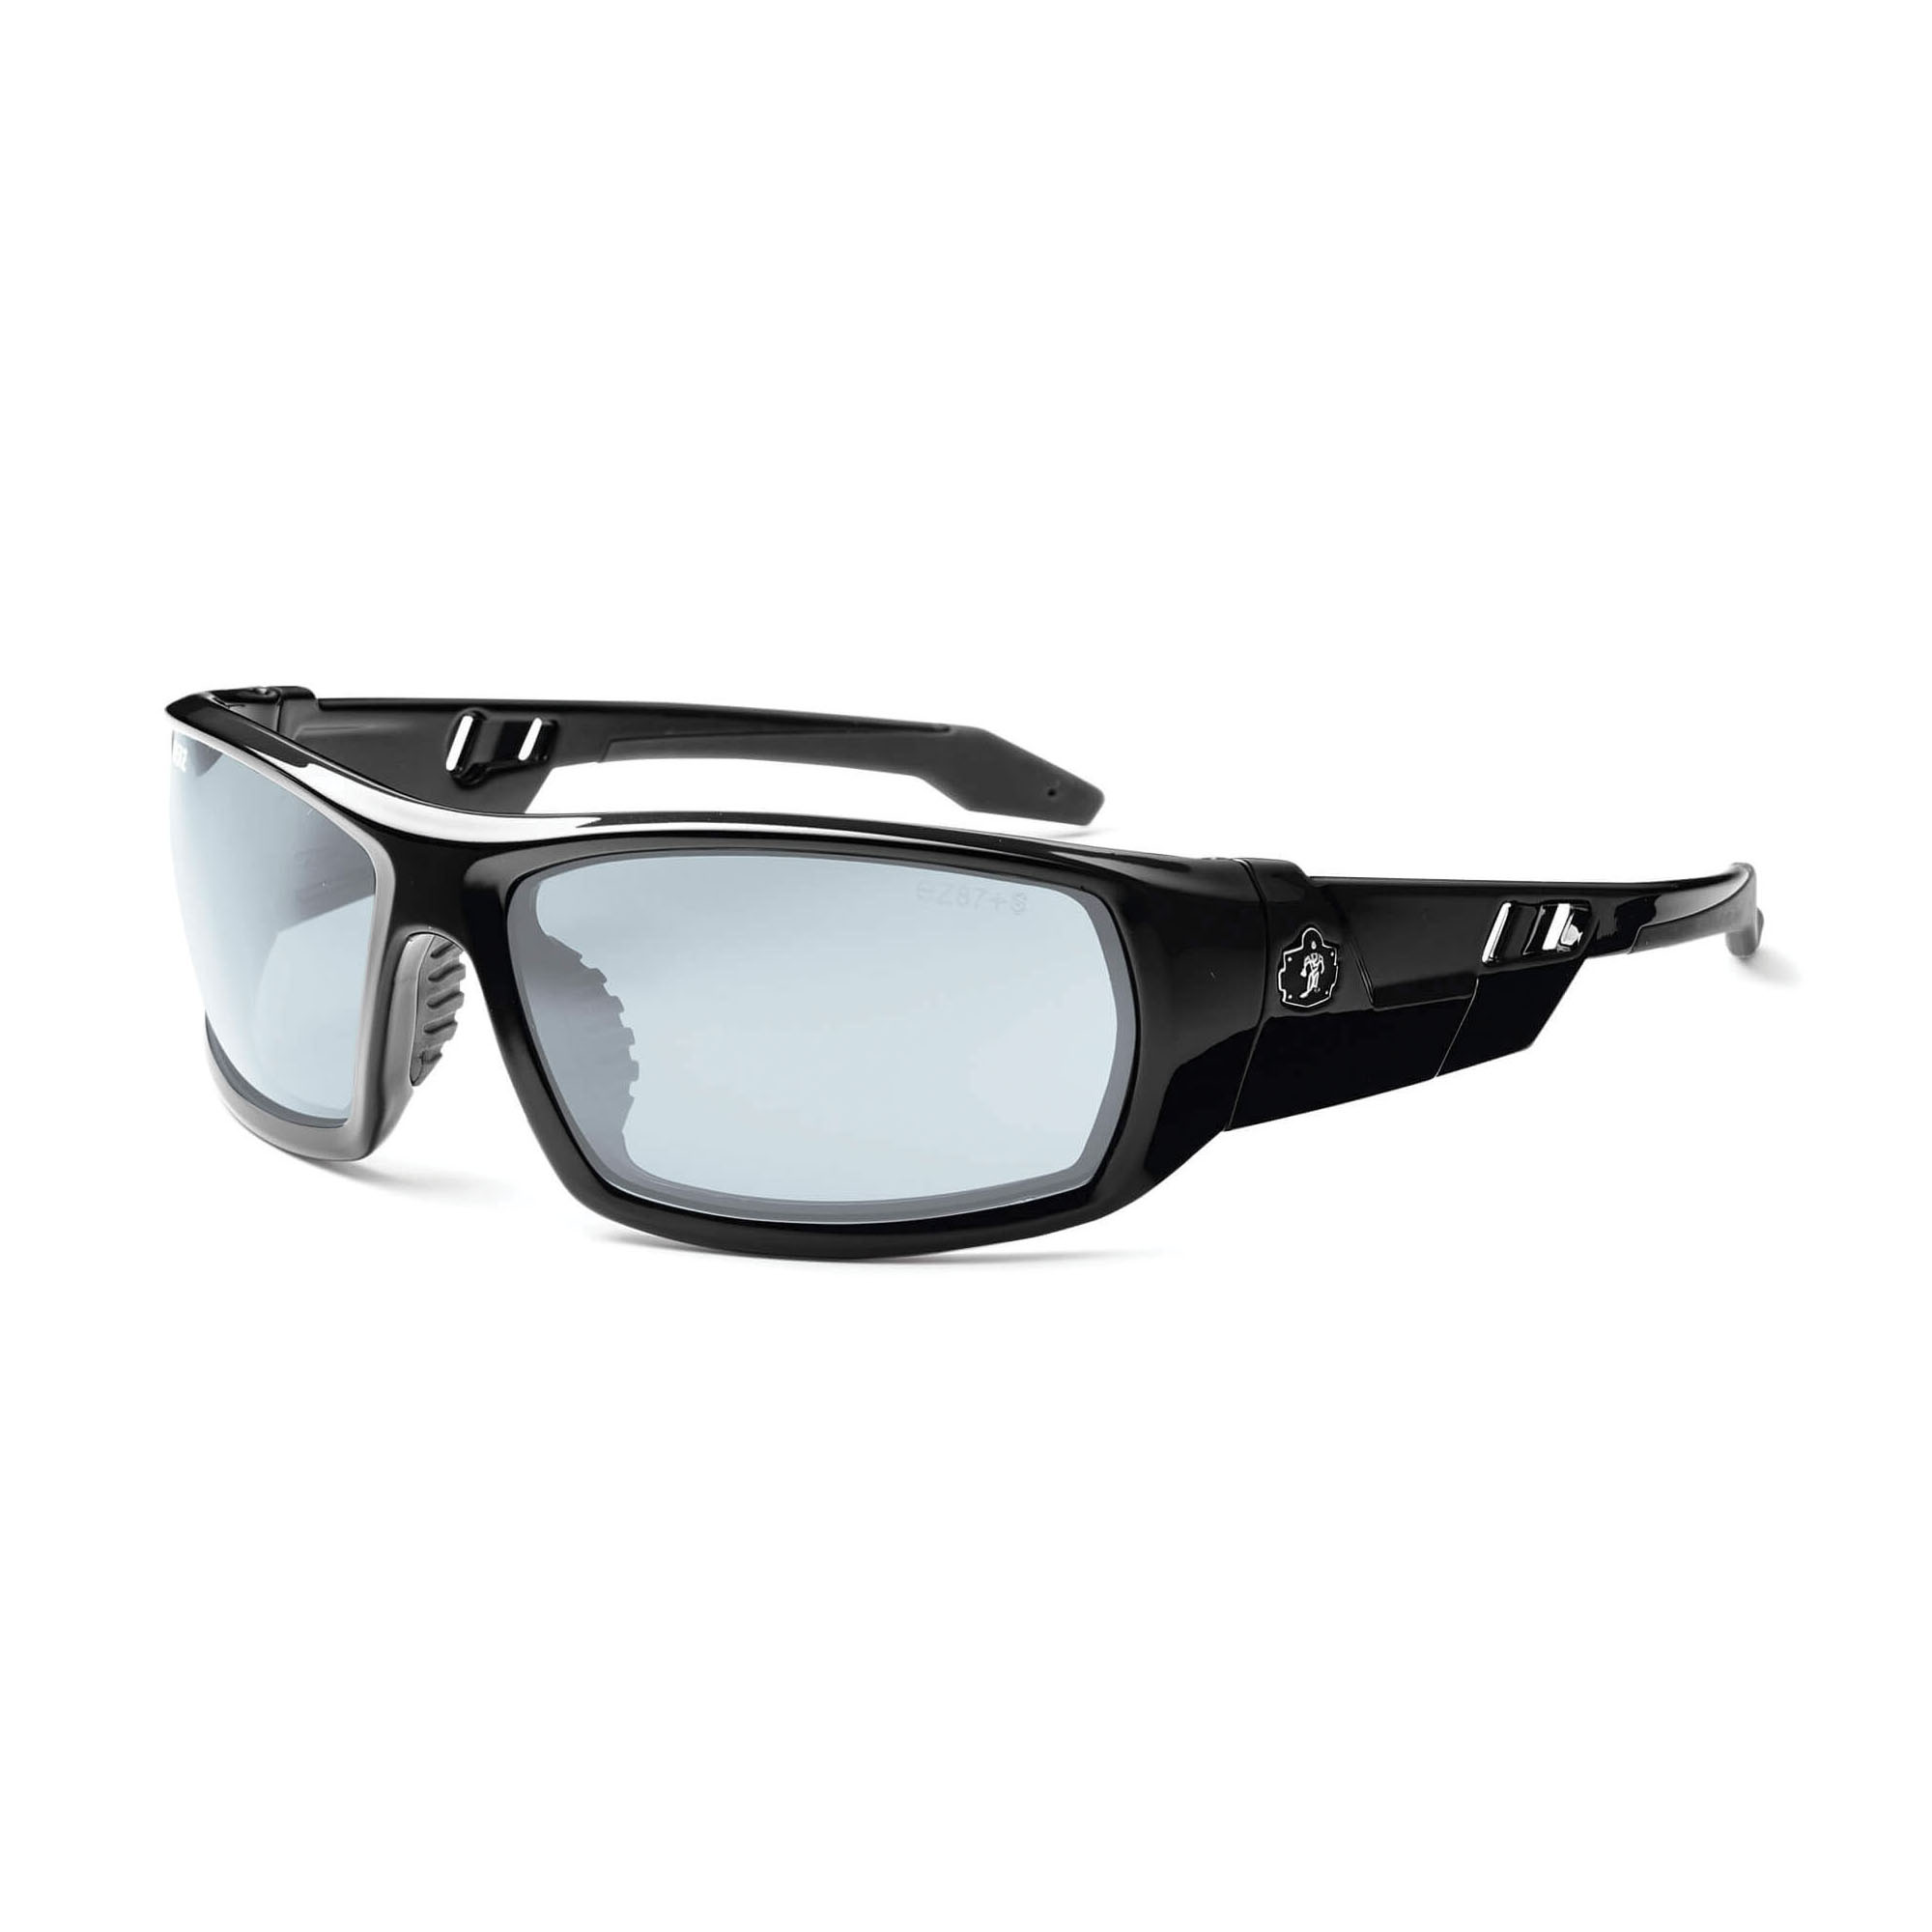 Skullerz® 50033 ODIN-AF Safety Glasses, Anti-Scratch, Smoke Lens, Full Framed Frame, Black, ANSI Z87.1+, CSA Z94.3, MIL-PRF 32432